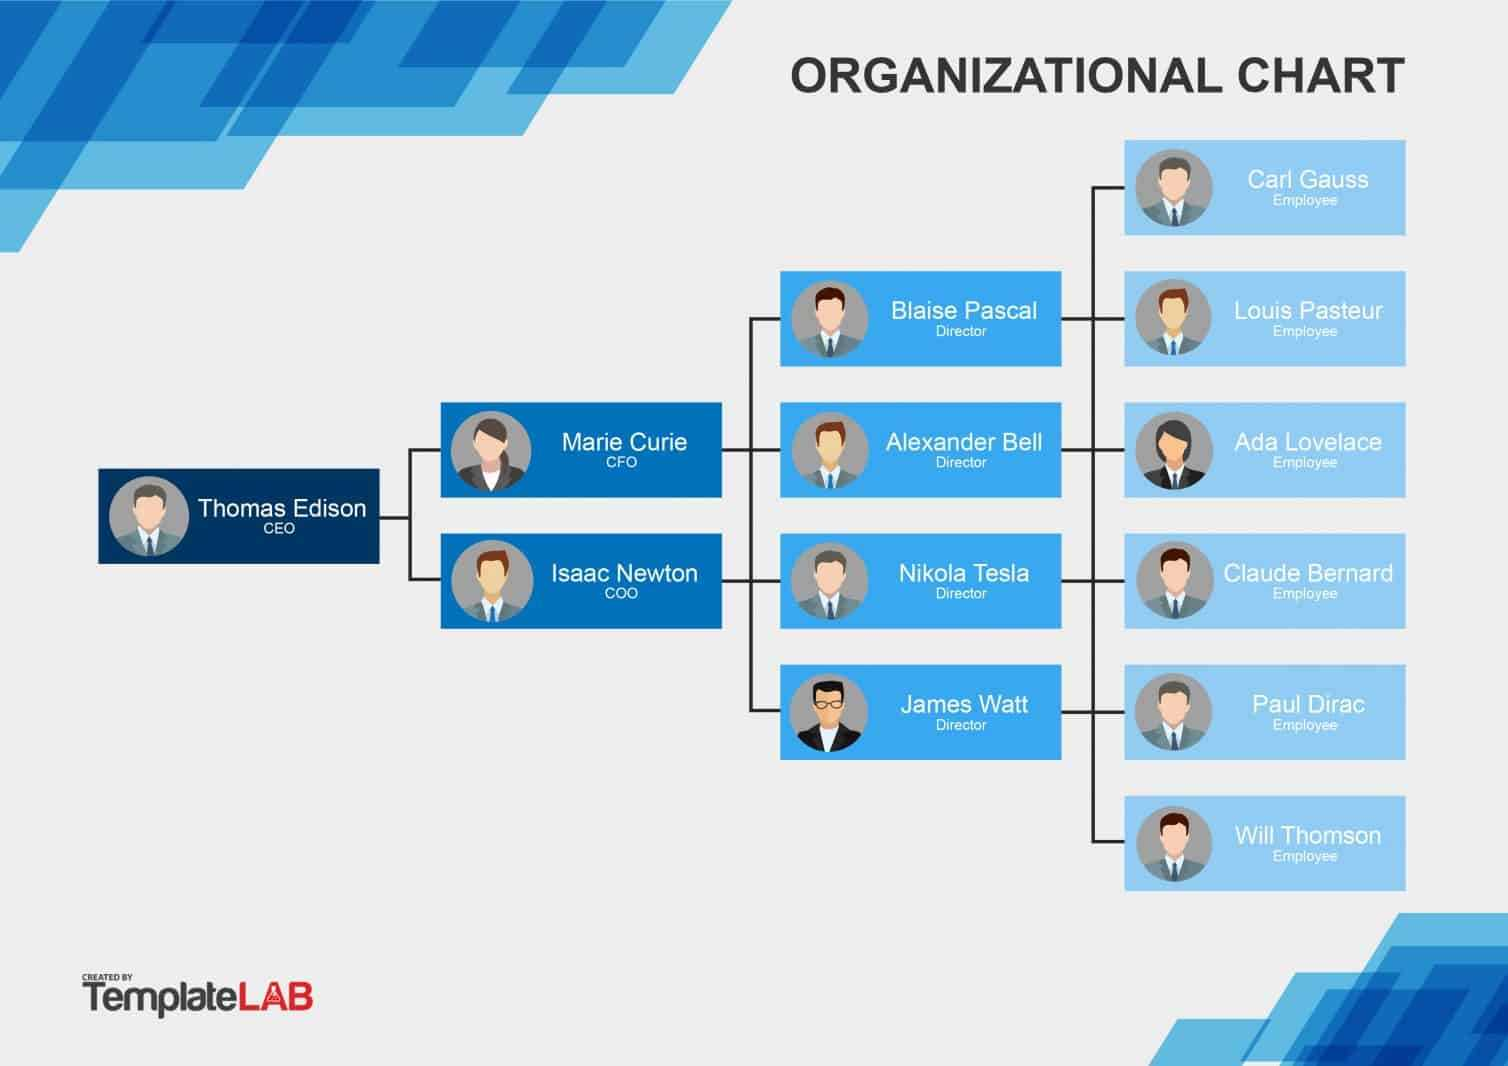 40 Organizational Chart Templates (Word, Excel, Powerpoint) Intended For Org Chart Word Template